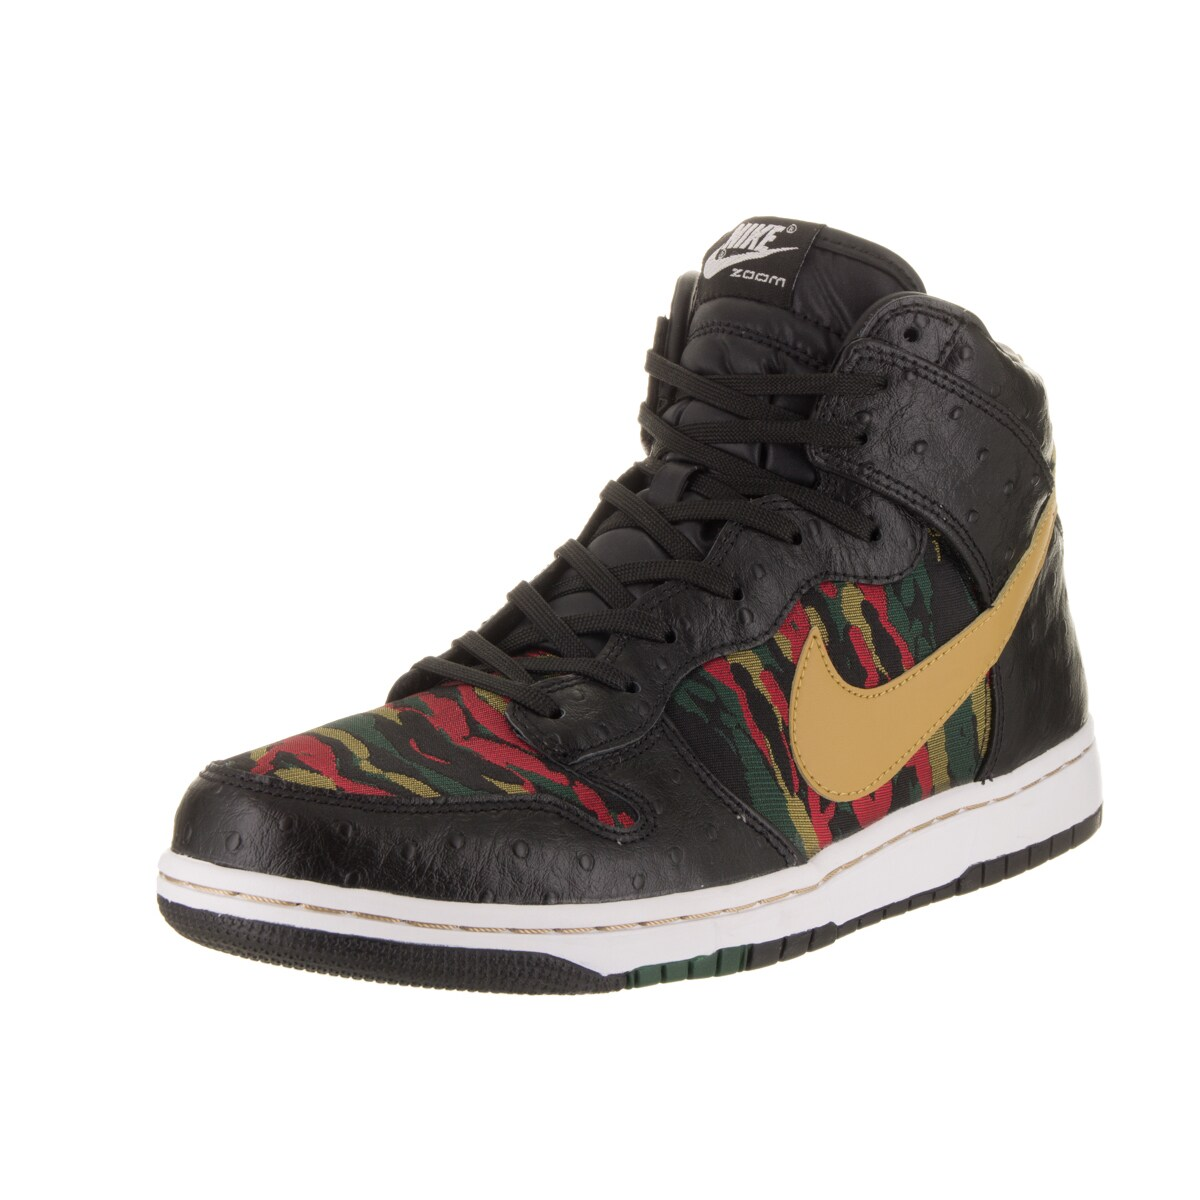 Nike Men's Dunk Cmft Prm Qs Black Leather Basketball Shoe...